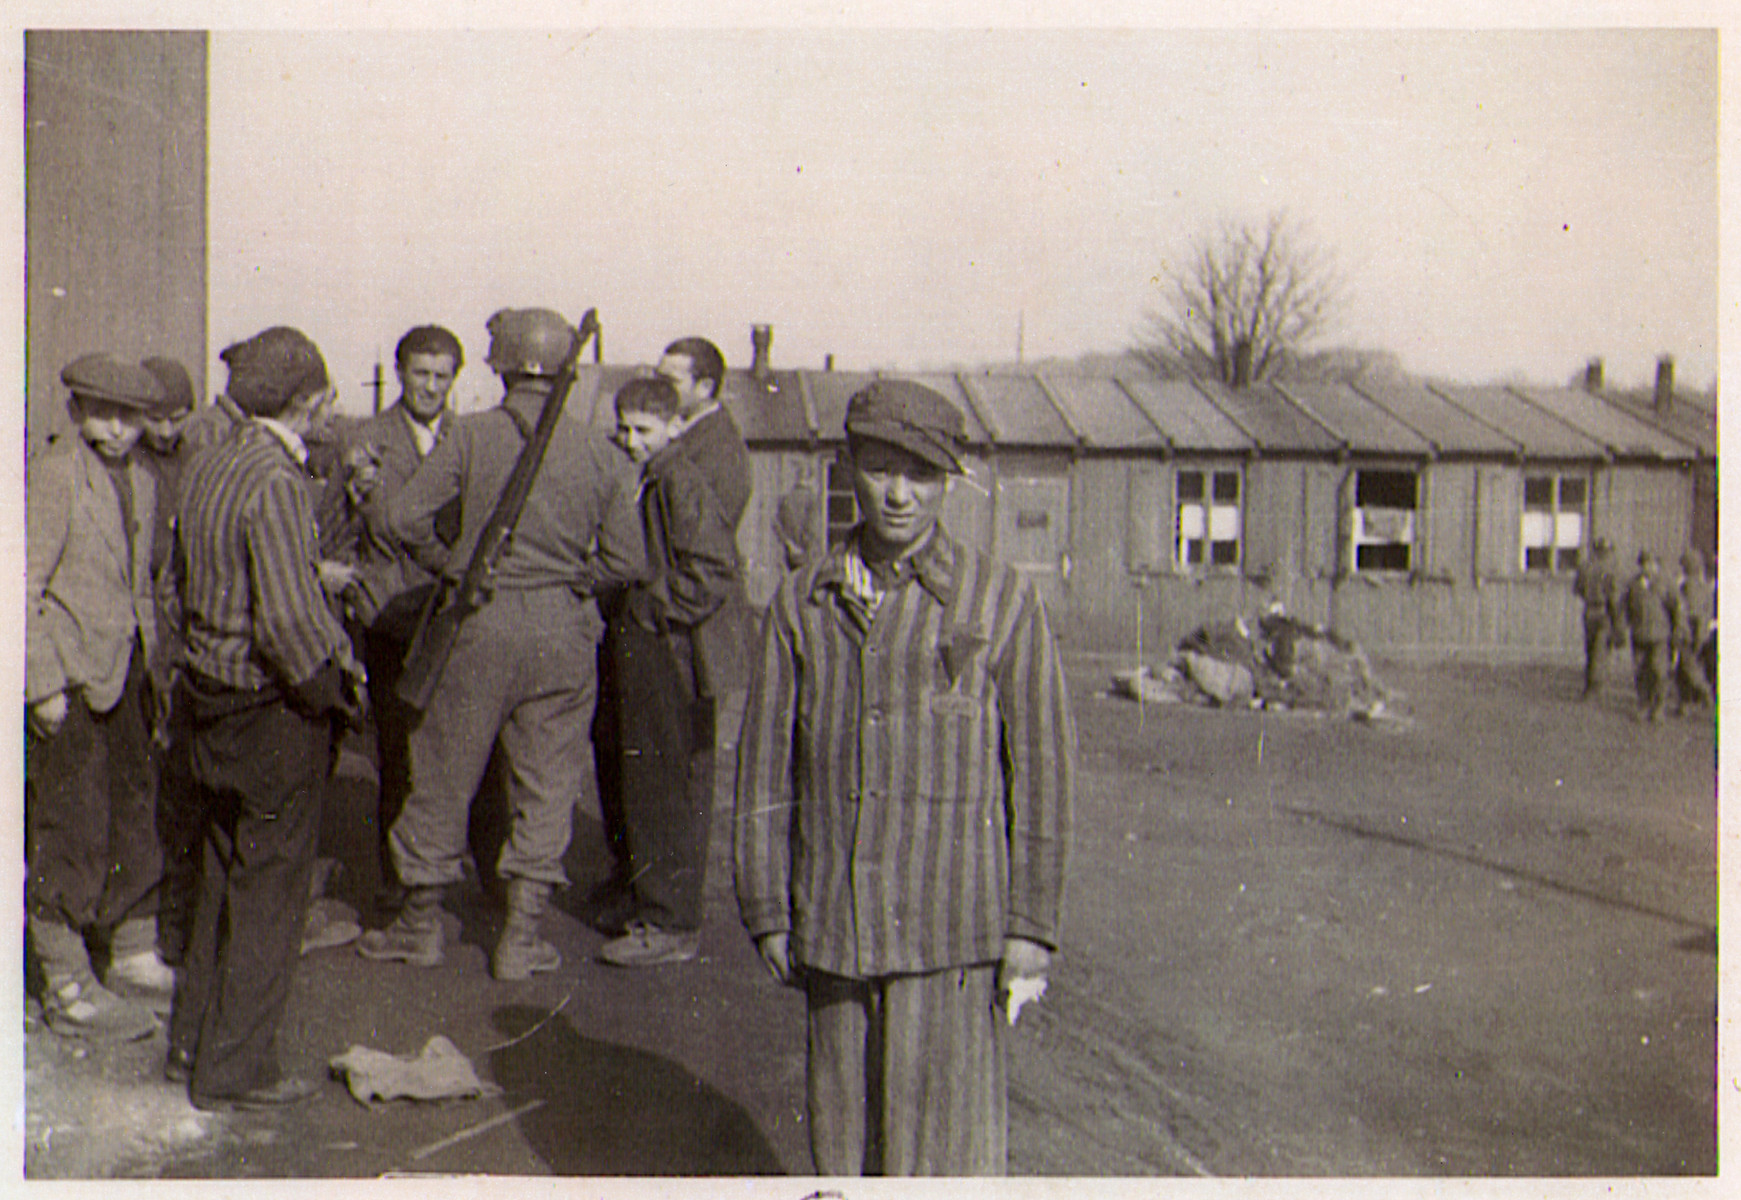 A young survivor of the Hanover-Ahlem concentration camp poses in front of a group speaking to an American soldier.